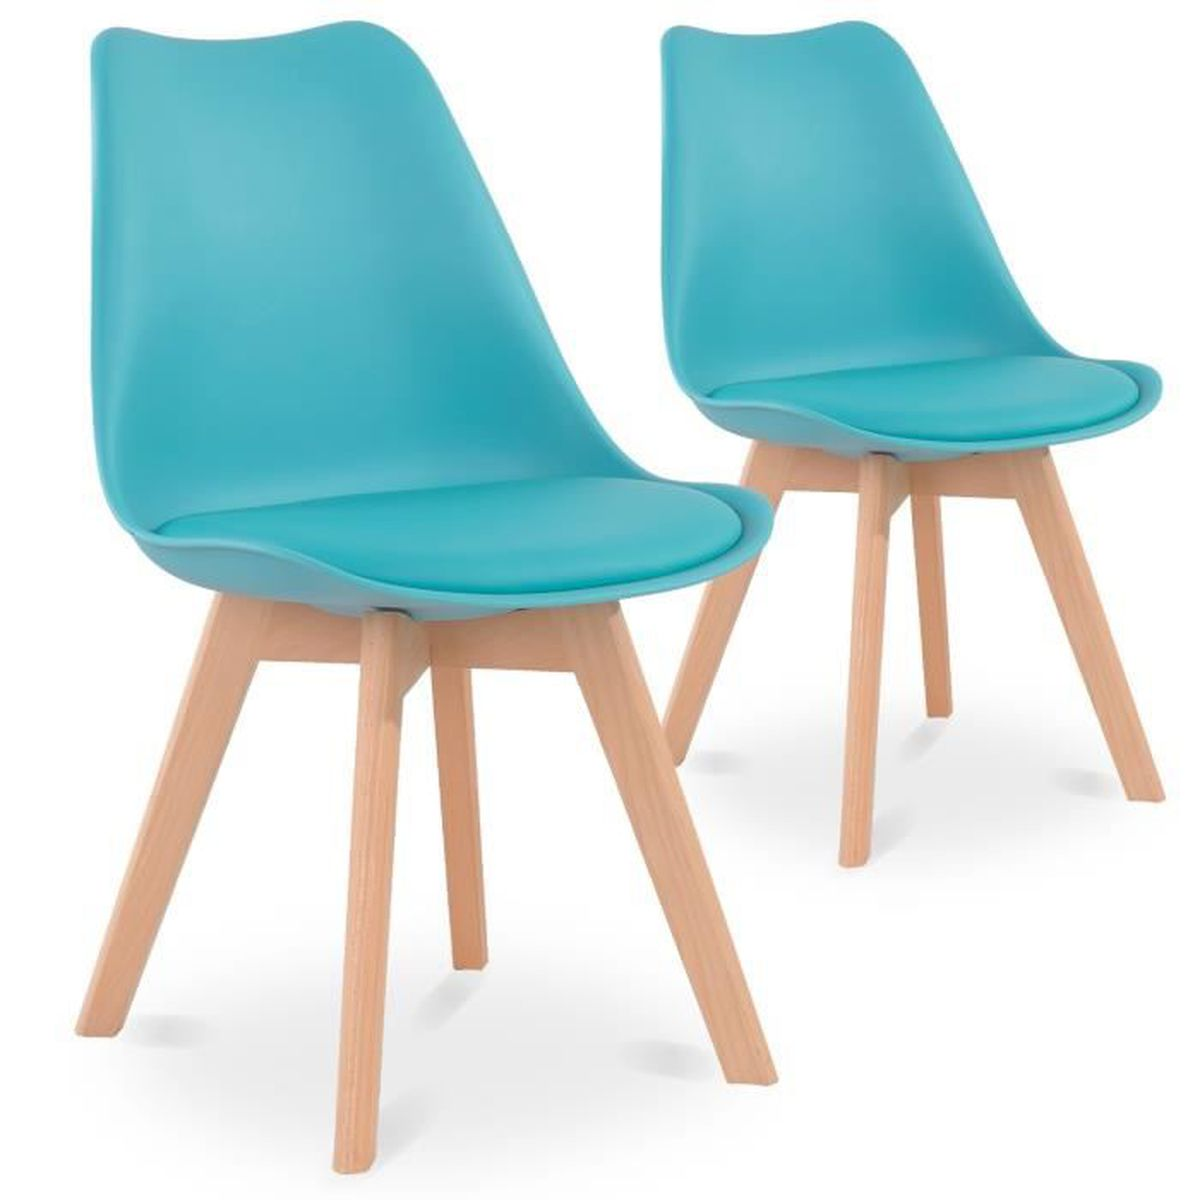 lot de 2 chaises style scandinave catherina bleu t - Chaise Scandinave Bleu